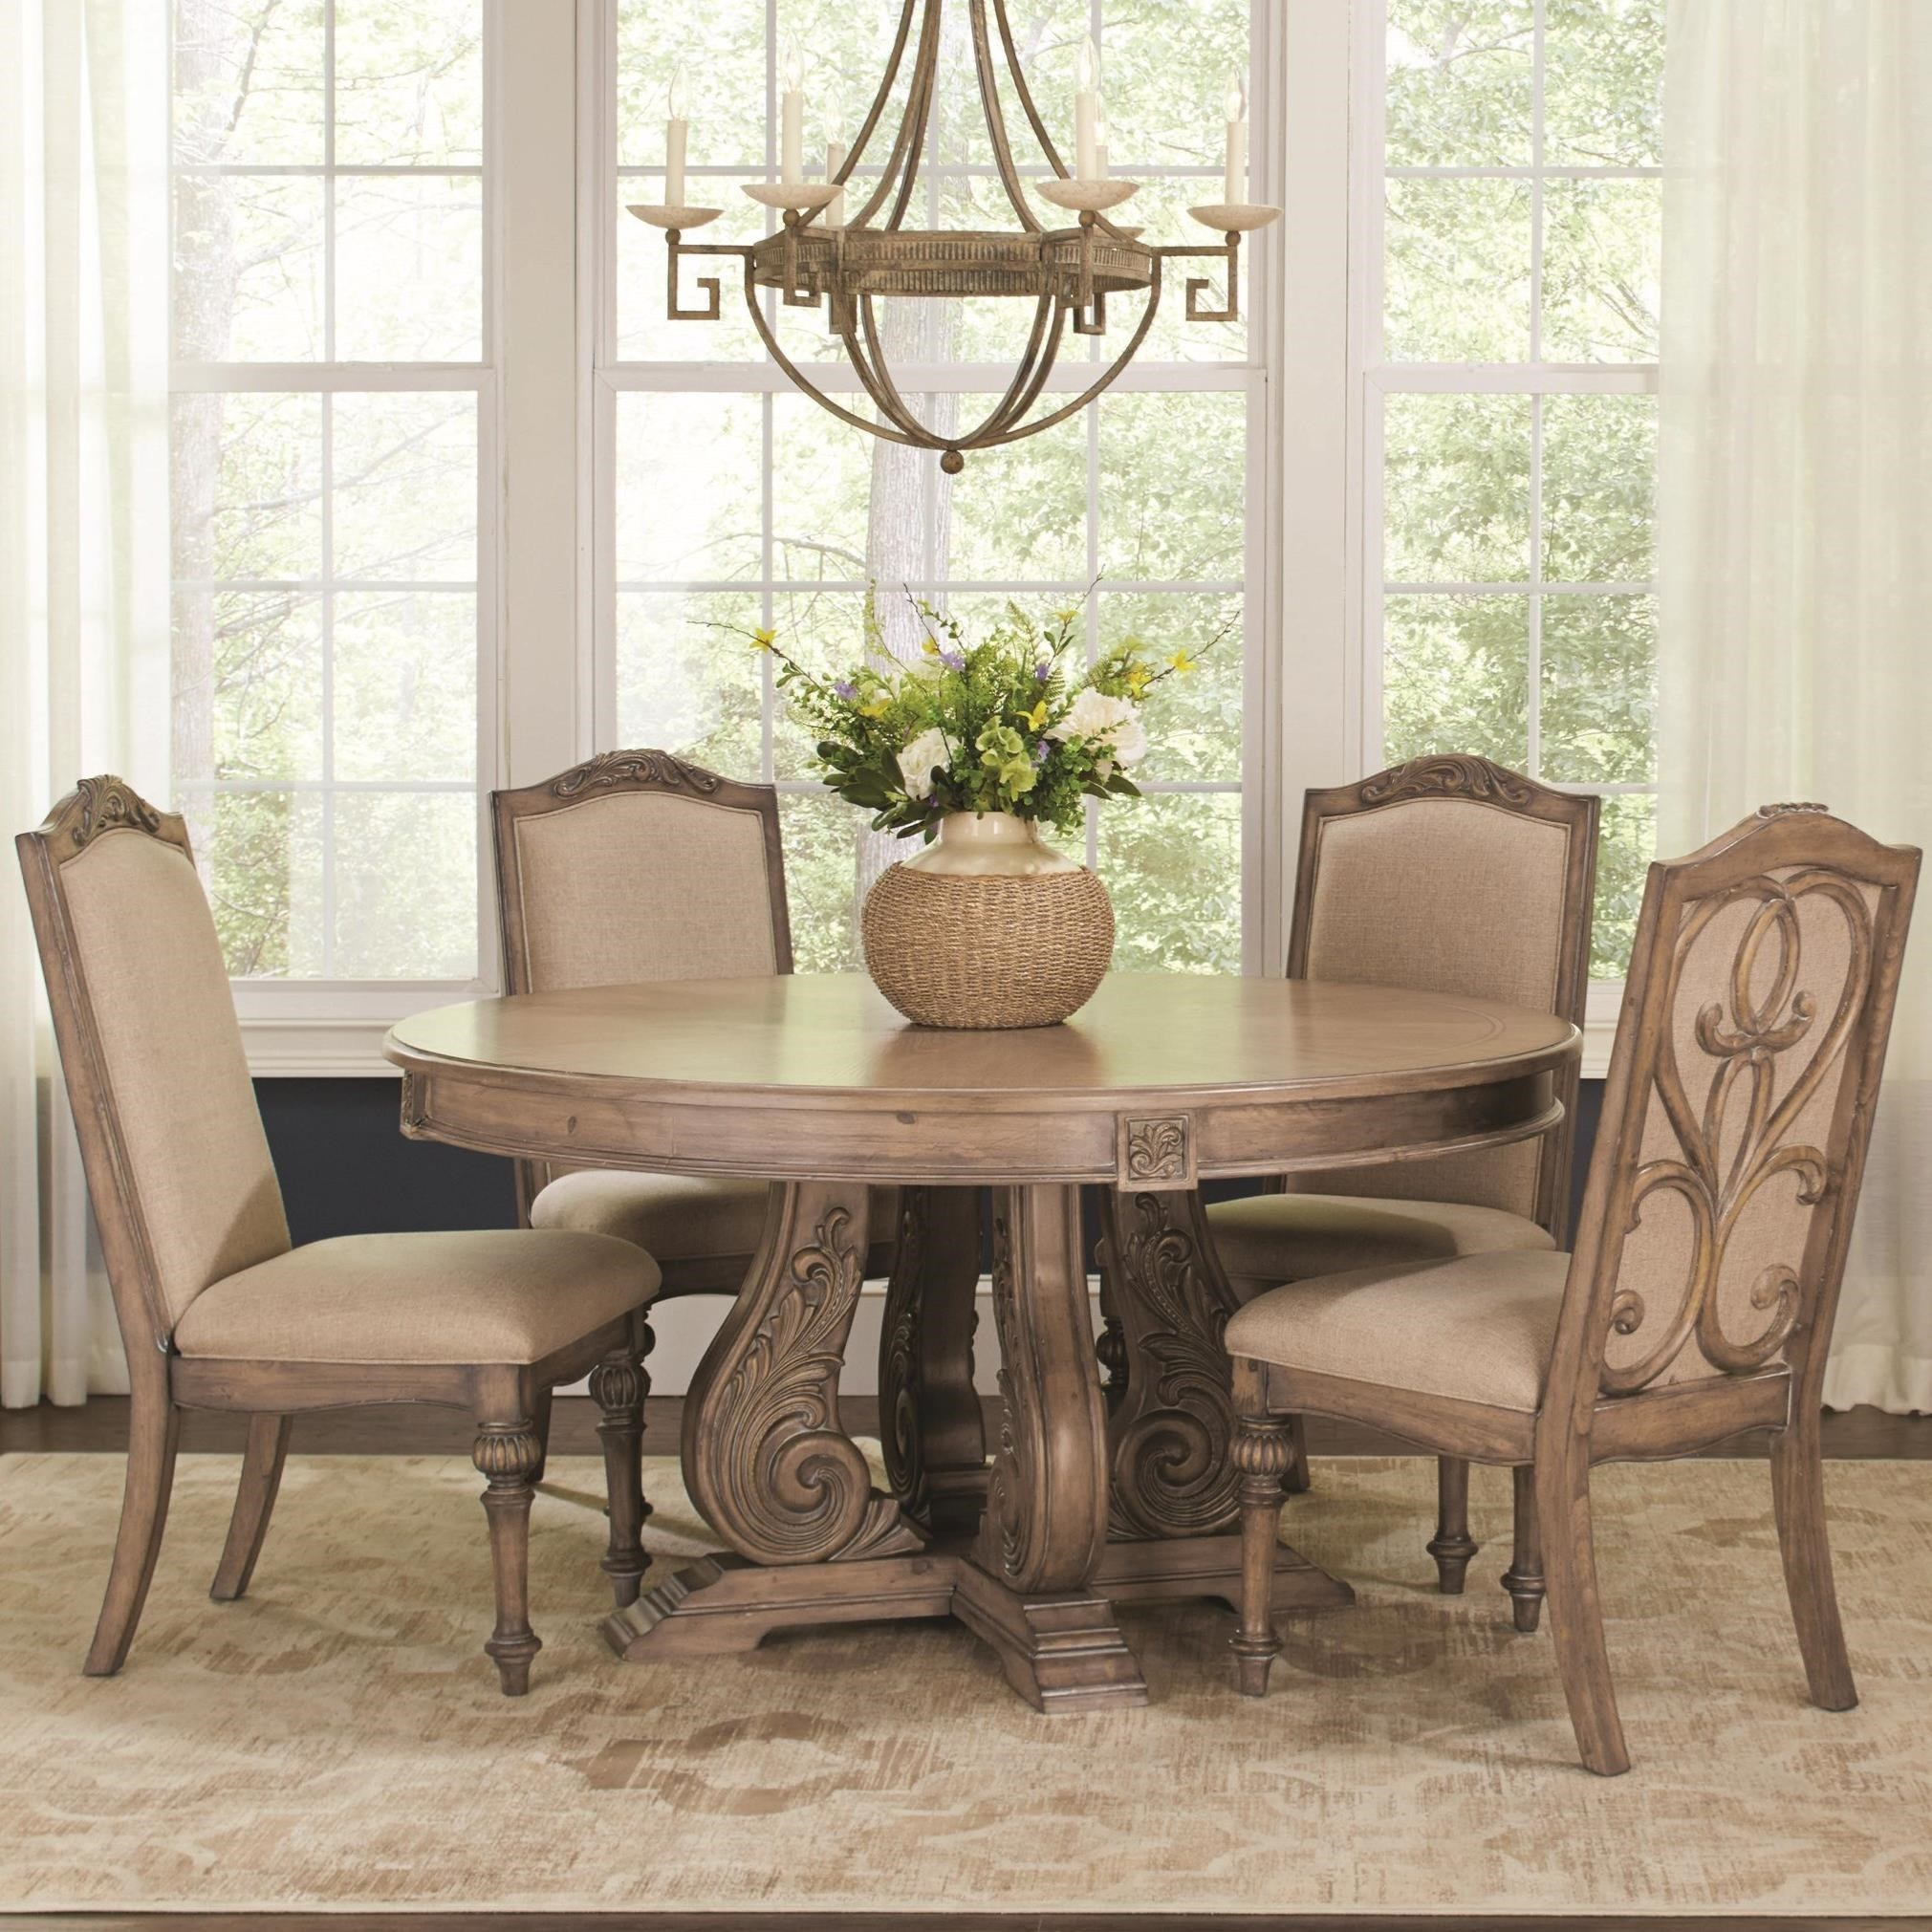 Coaster Ilana Round Dining Table - Item Number: 122210